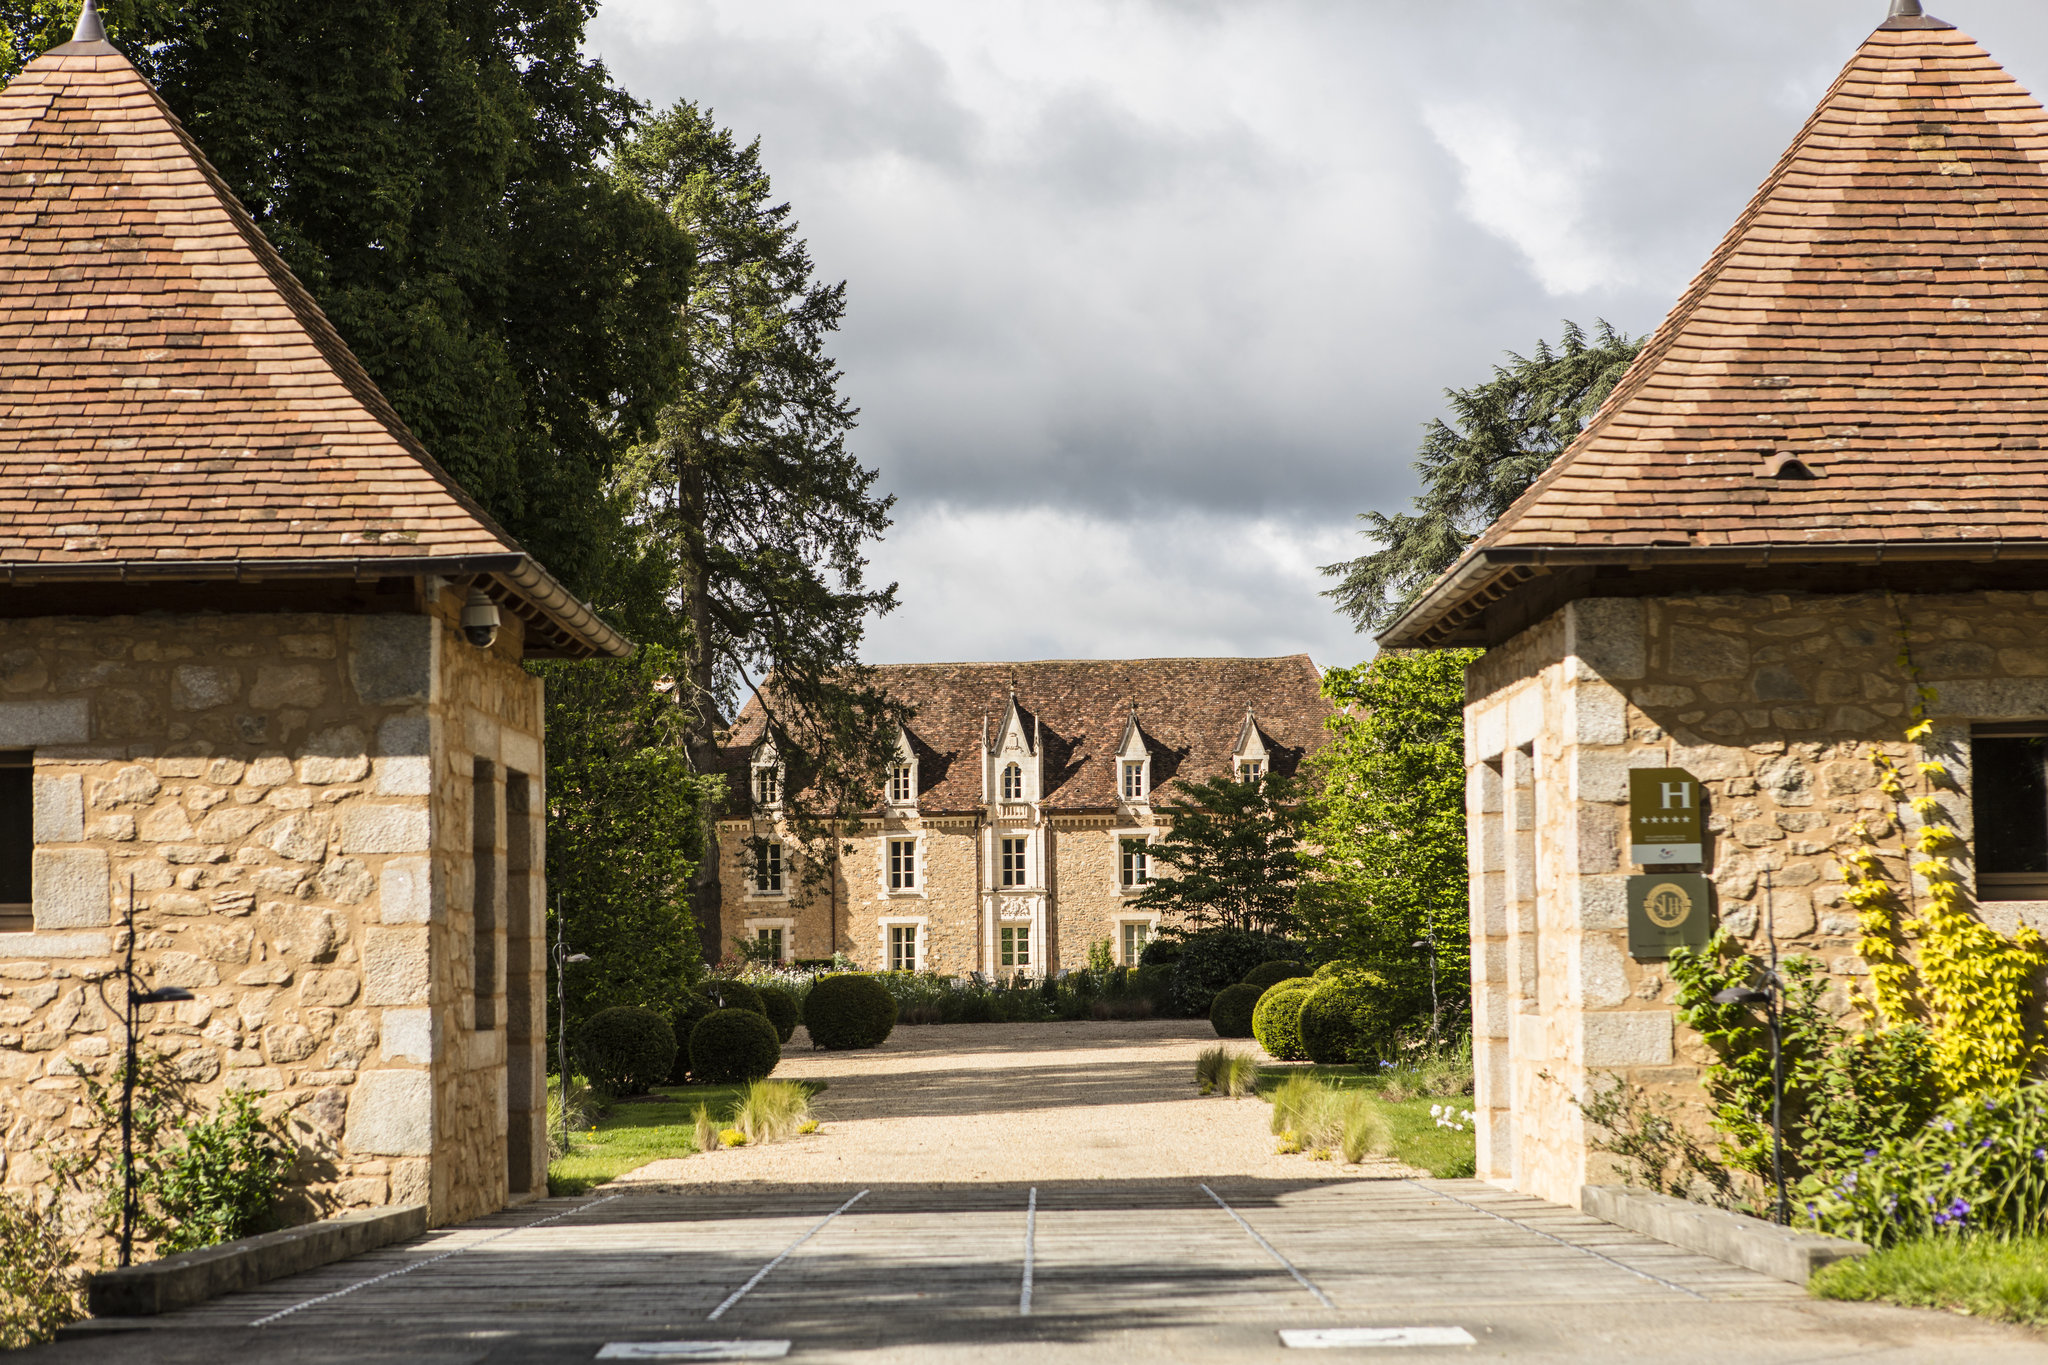 Entrance of the Domaine